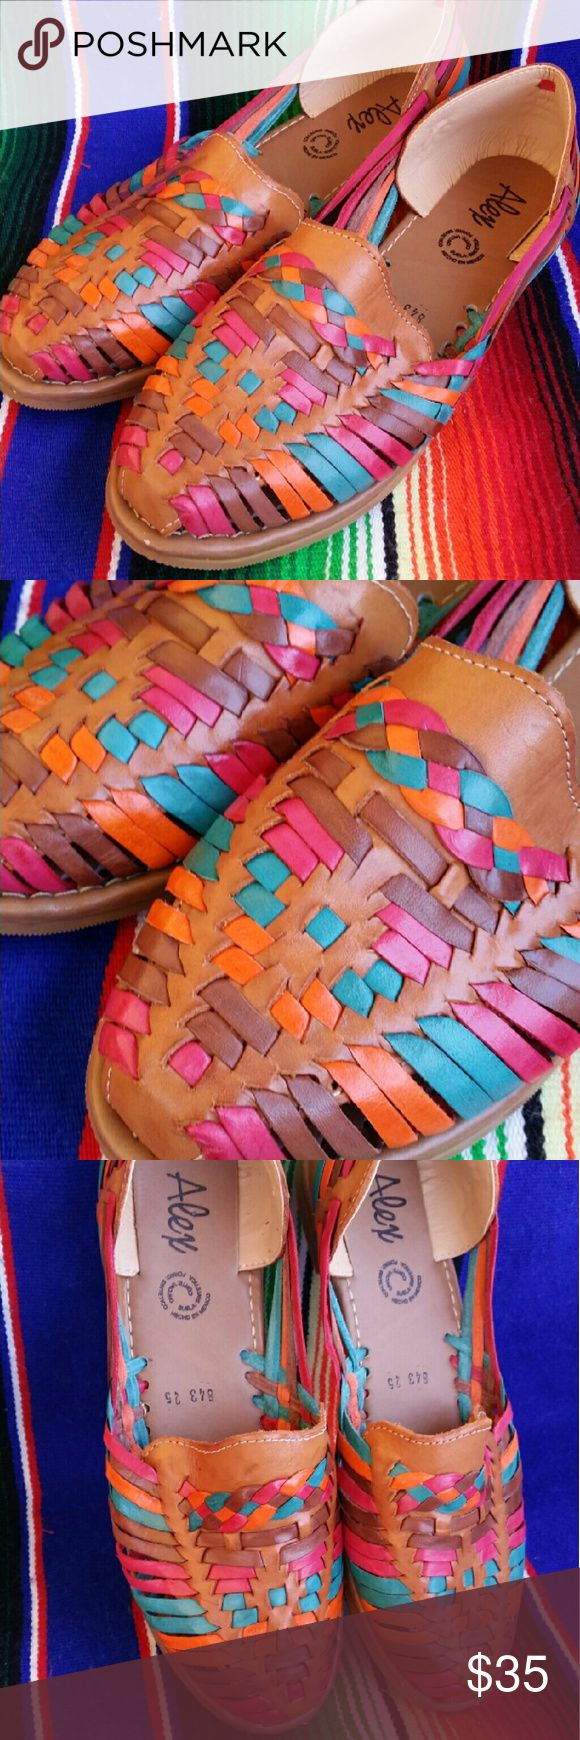 Colorful Womens Leather Huarache Sandals Size 7 Soft brown leather Pretty colors even throughout Traditional Mexican sandals Handmade and never been worn Size 7, although these run a tad big Shoes Sandals